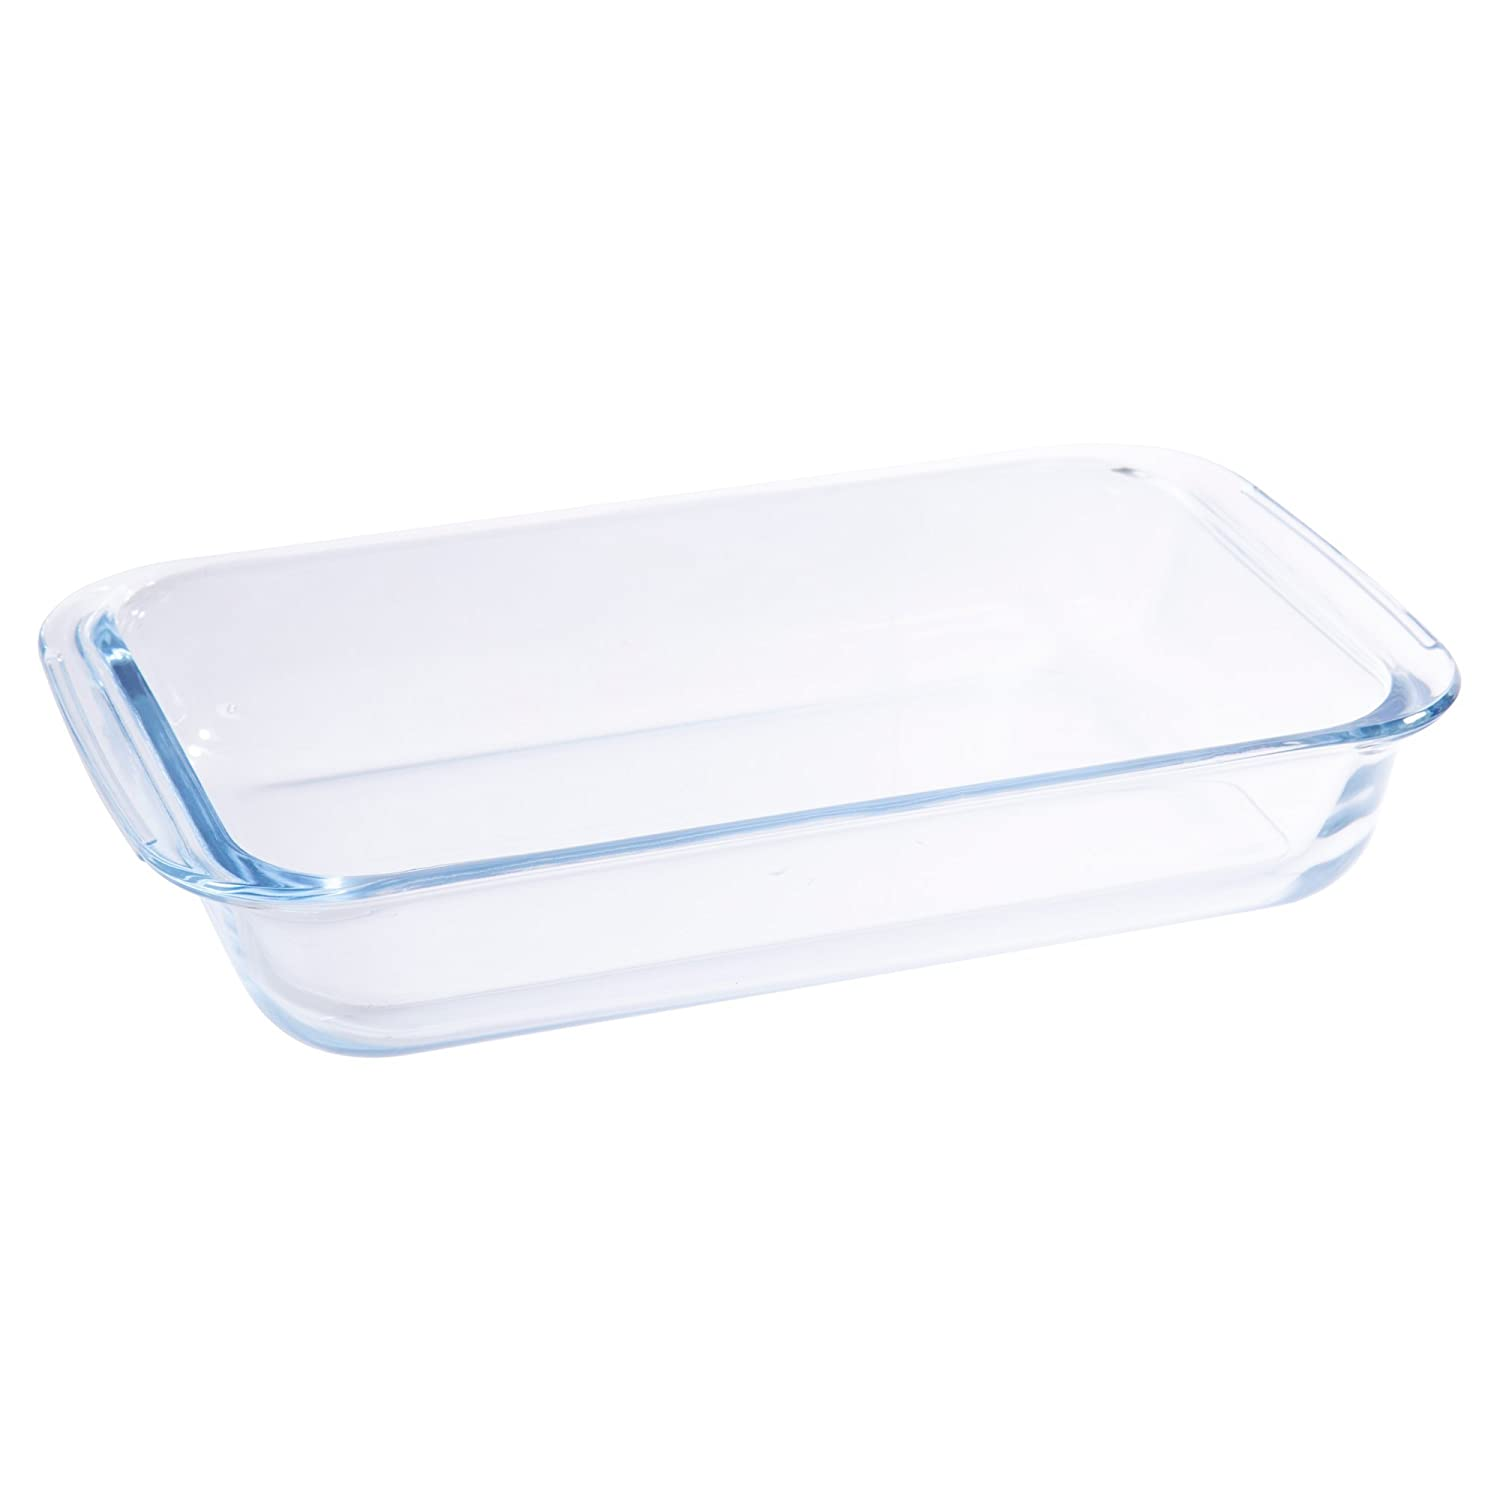 Luciano, 1L Rectangular Glass Bakeware and Serveware Set, Pack of 6, 10 x 6 inches, Clear